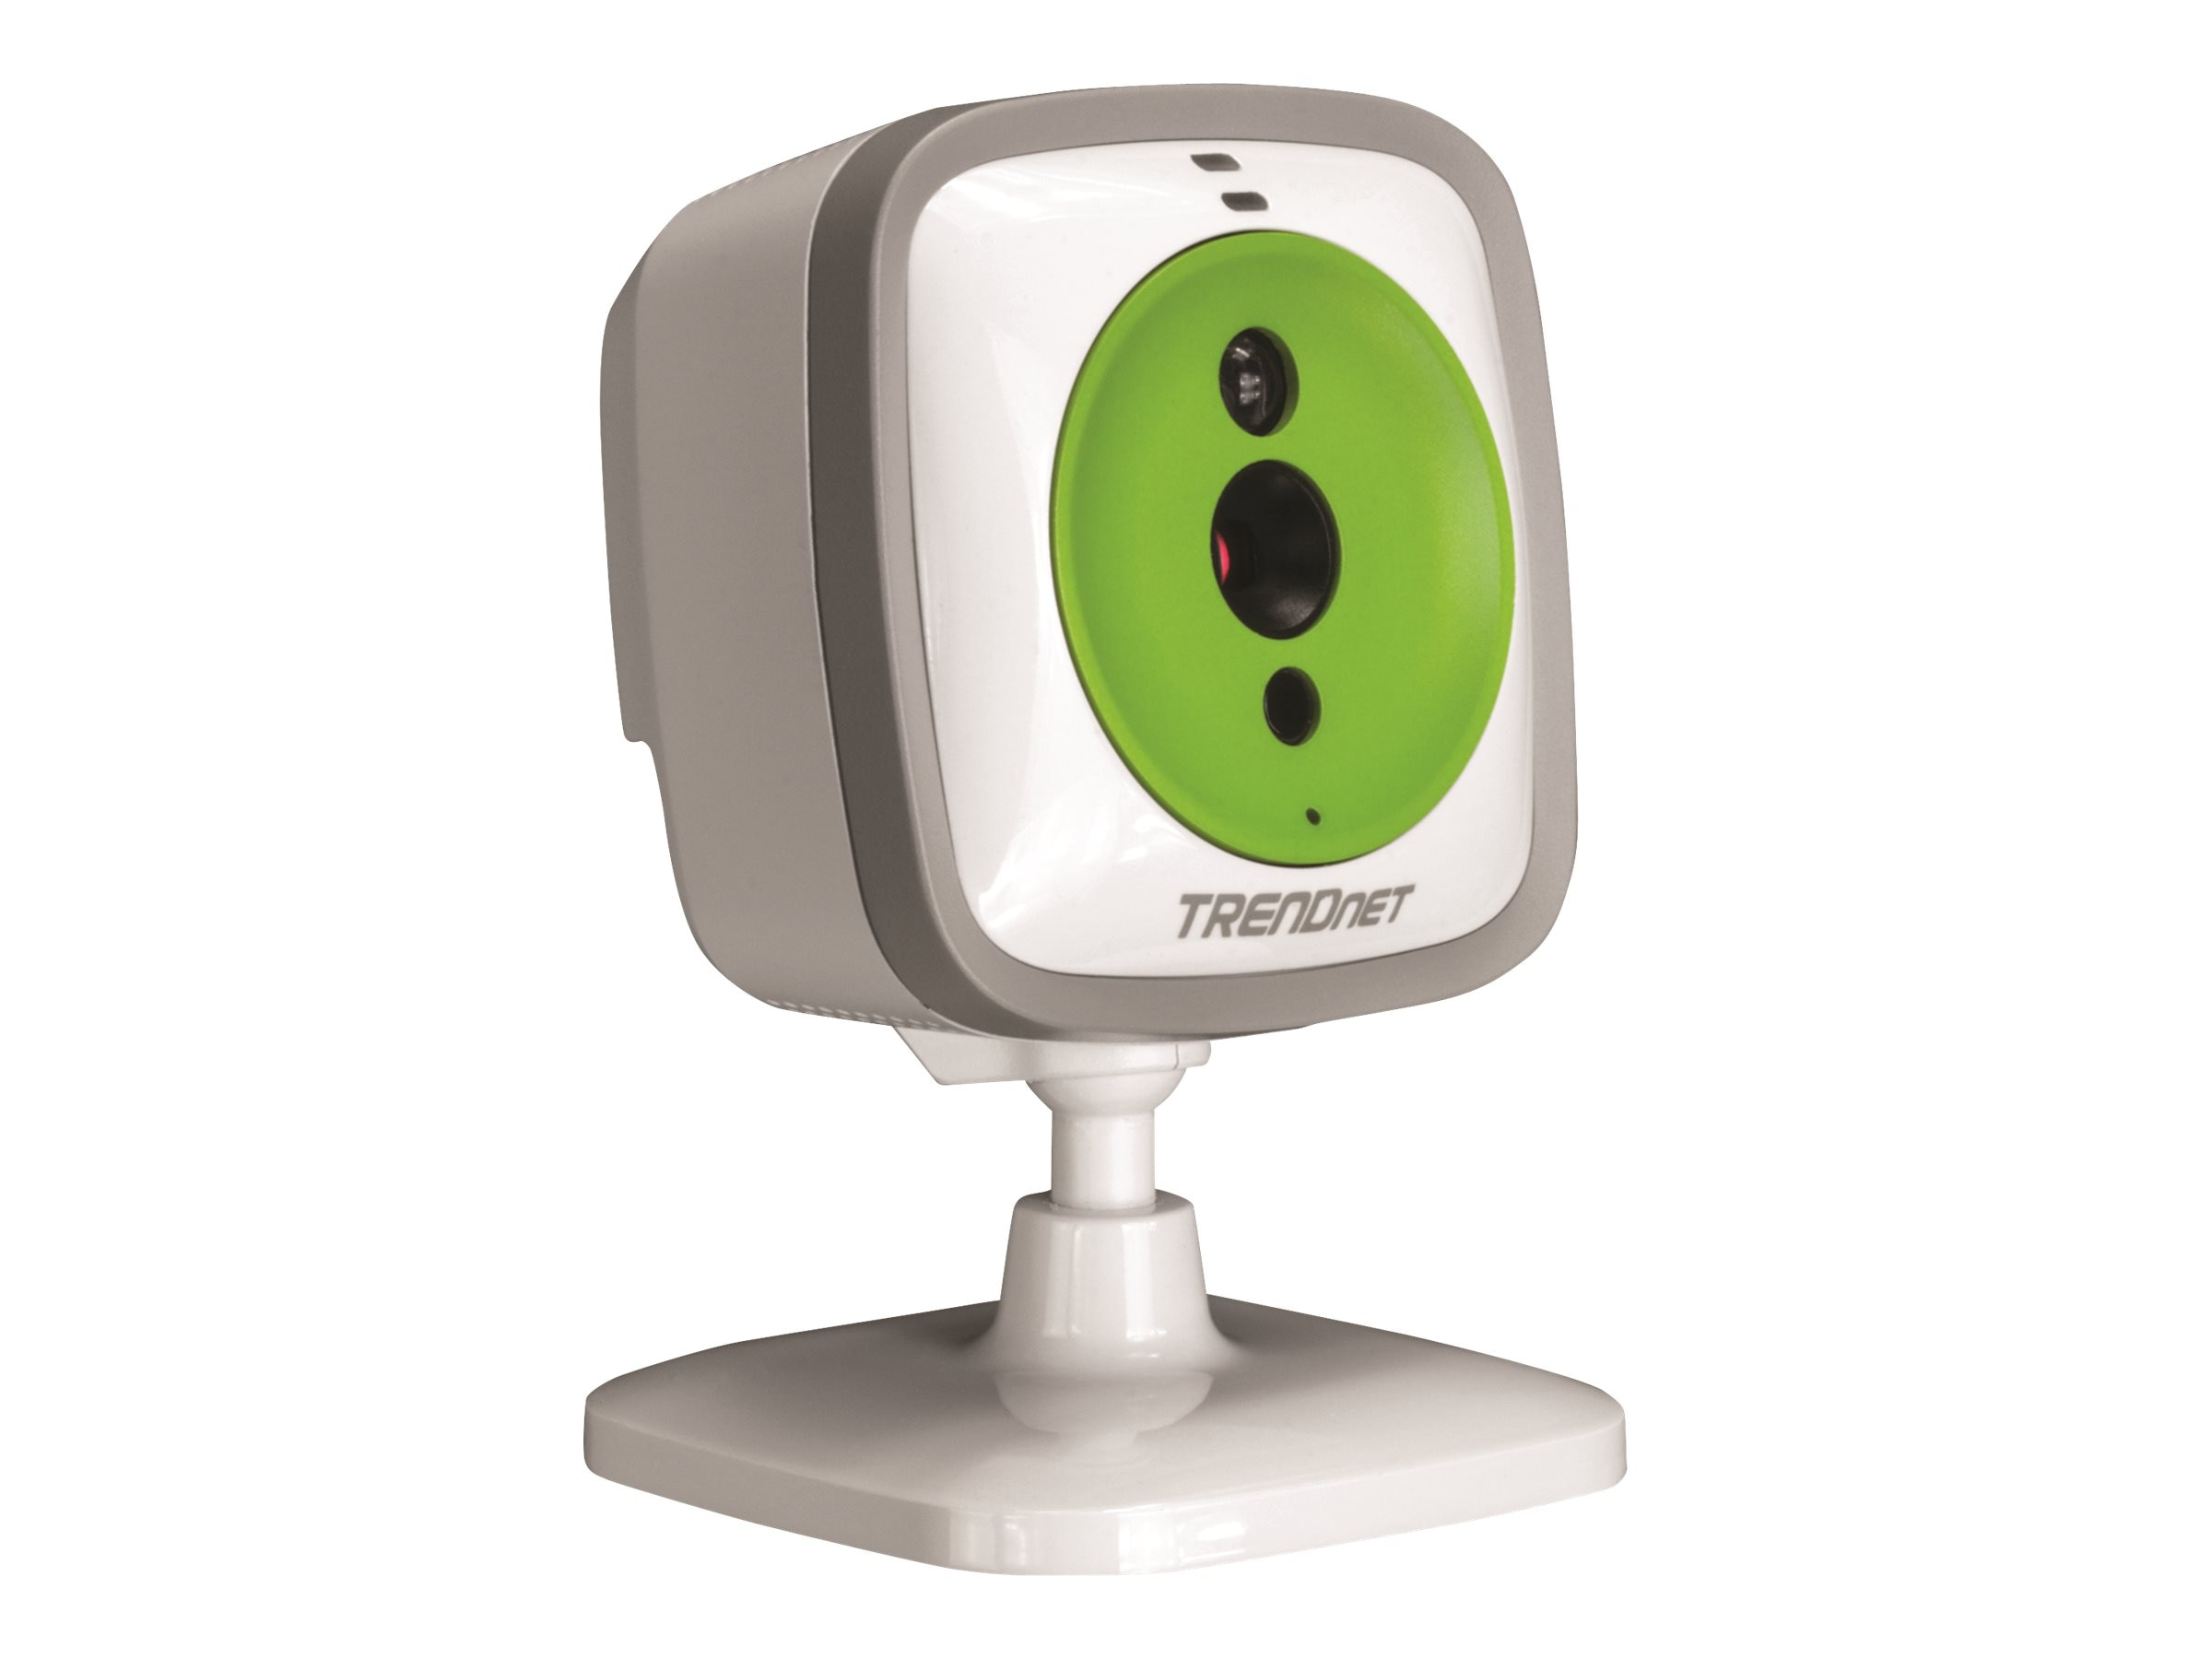 TRENDnet WiFi Baby Camera, TV-IP743SIC, 17670140, Cameras - Security